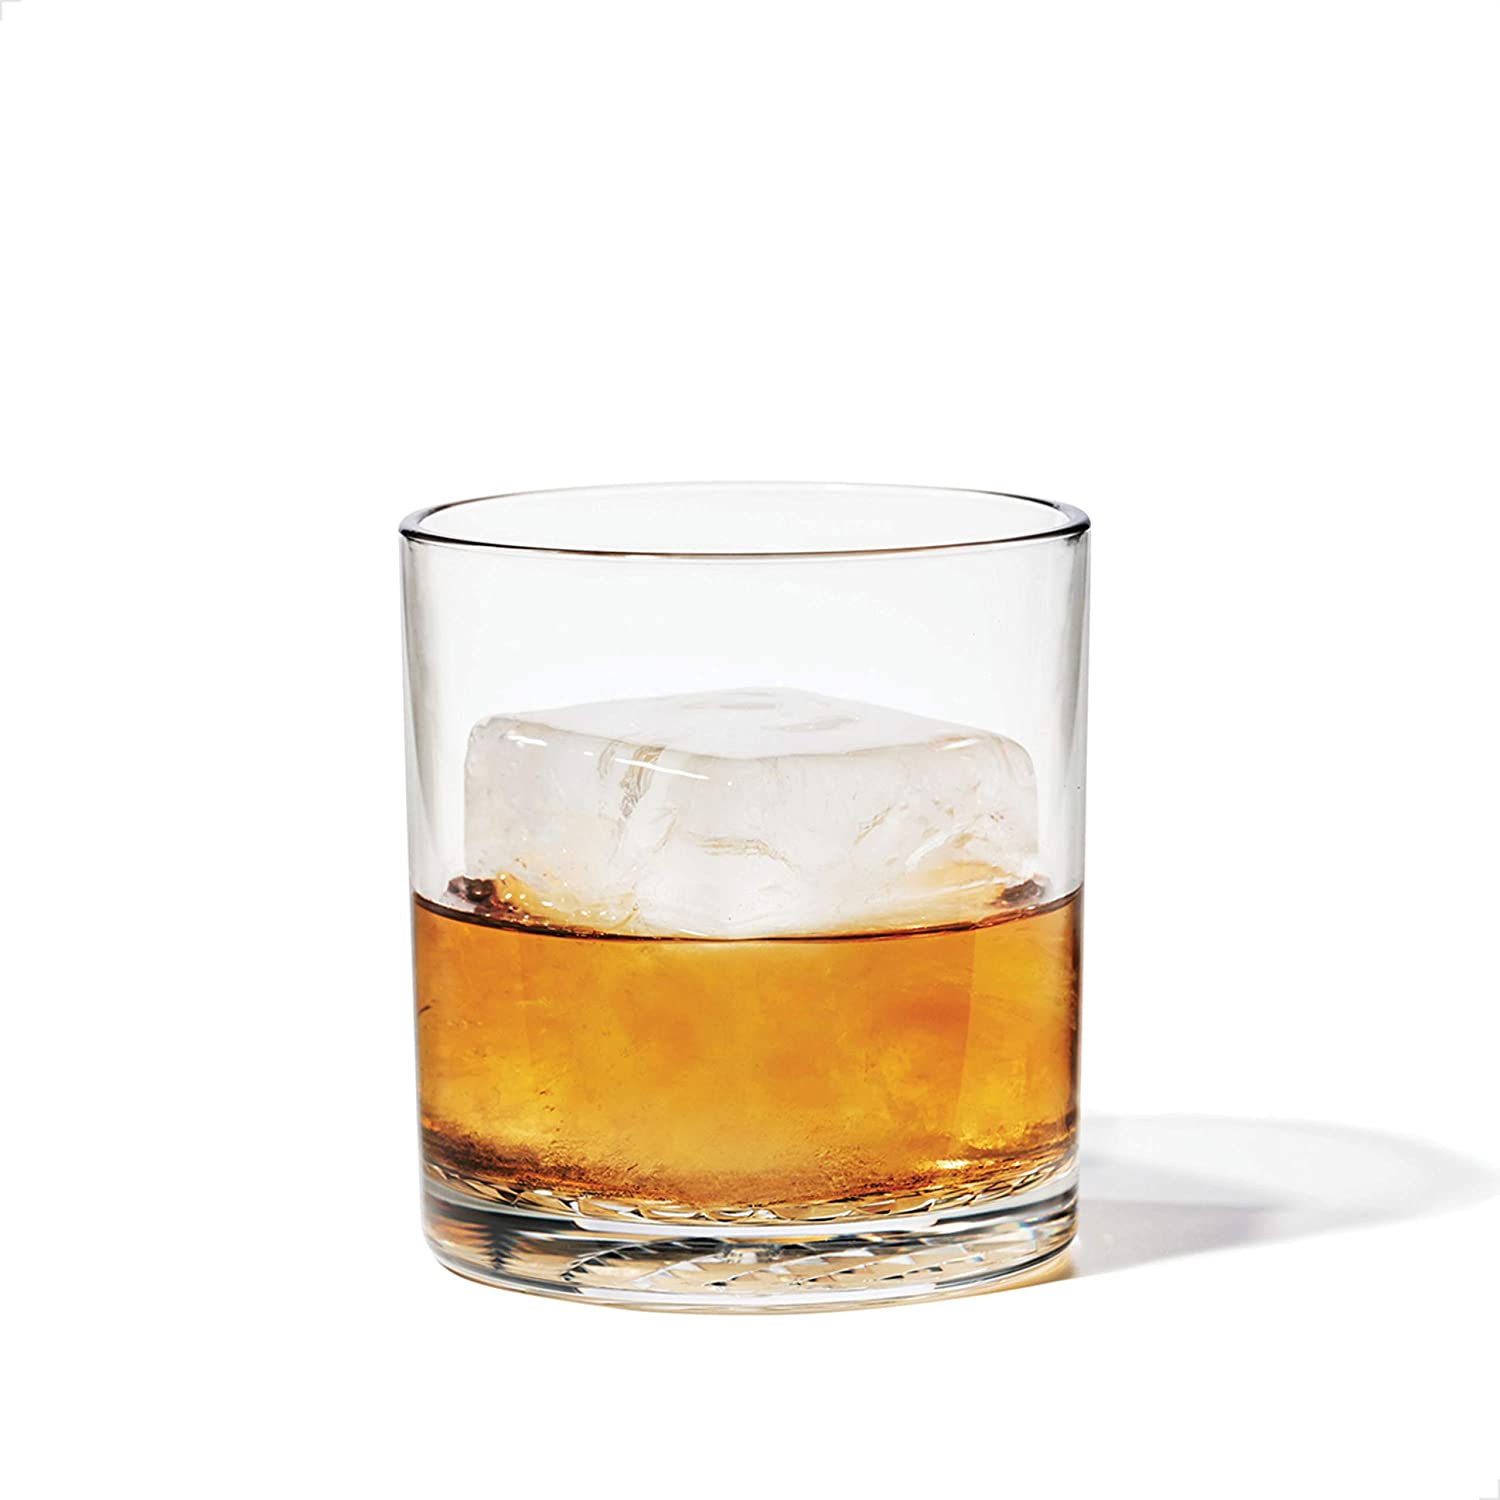 TOSSWARE 12oz Old Fashion SET OF 4, Tritan Dishwasher Safe & Heat Resistant Unbreakable Plastic Whiskey Glasses